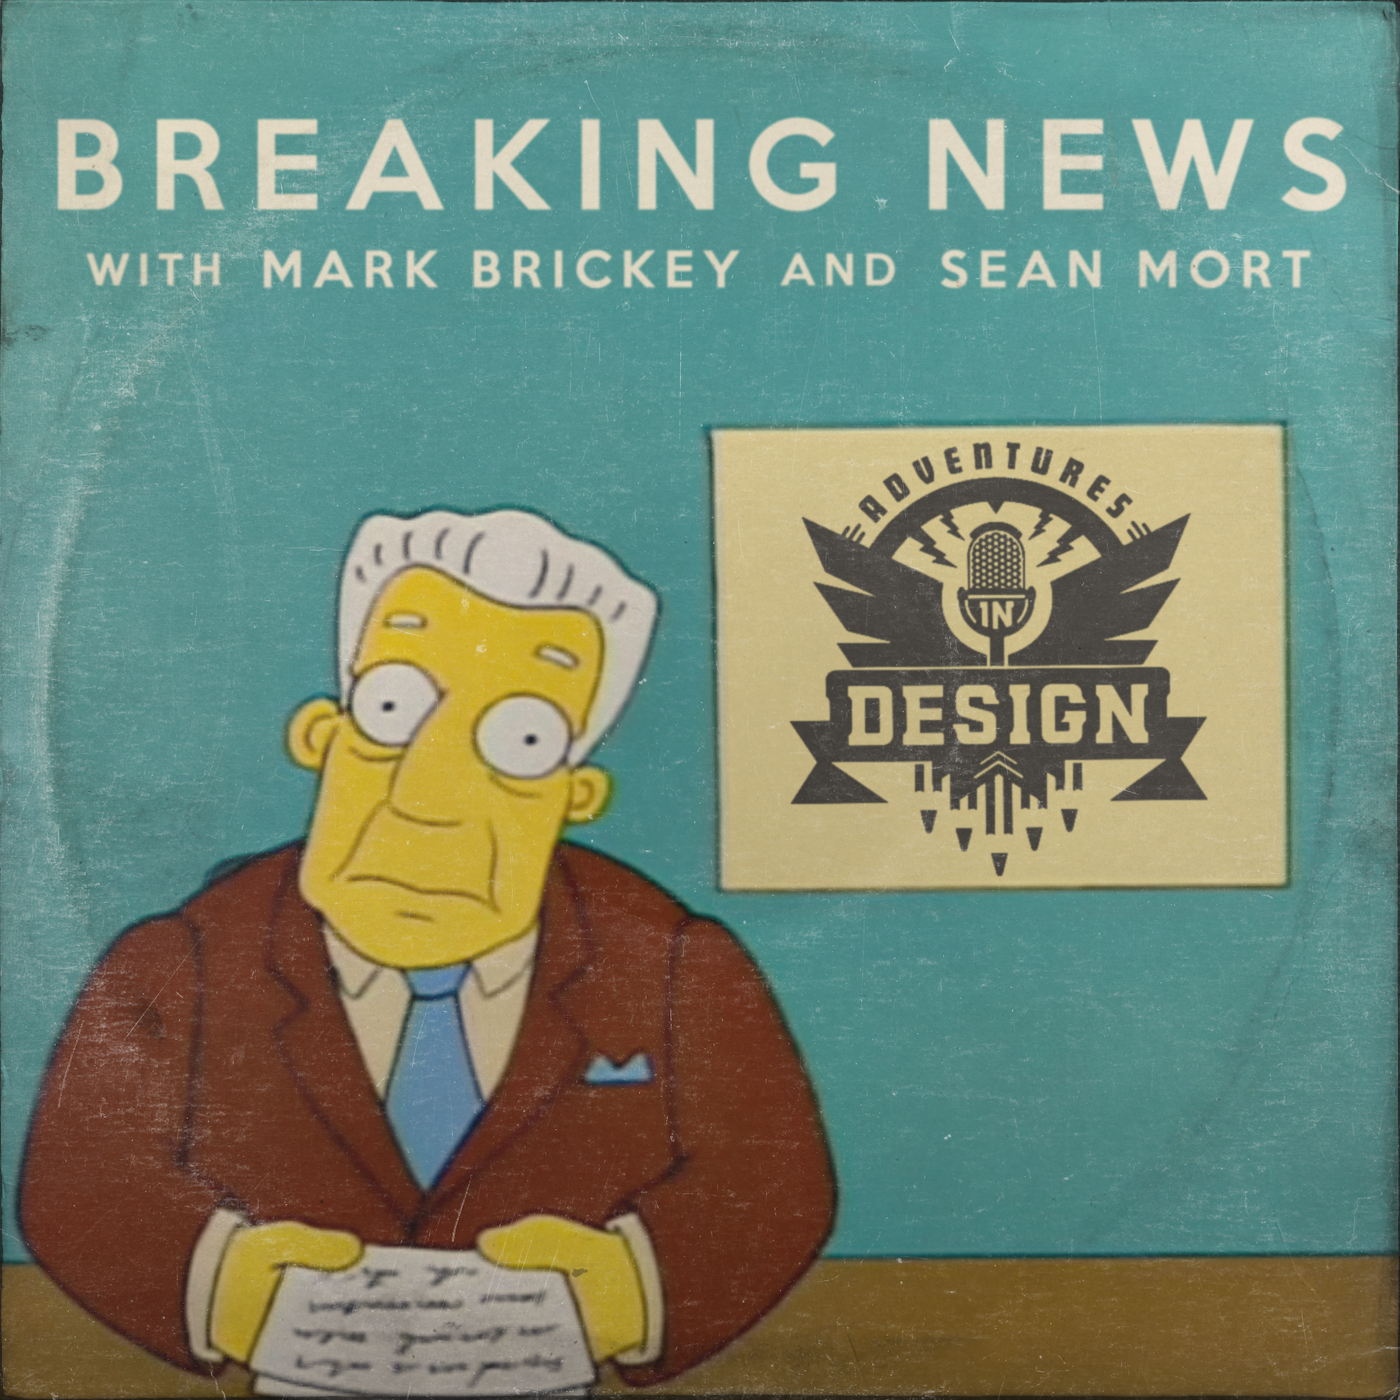 472 - Breaking News with Sean Mort